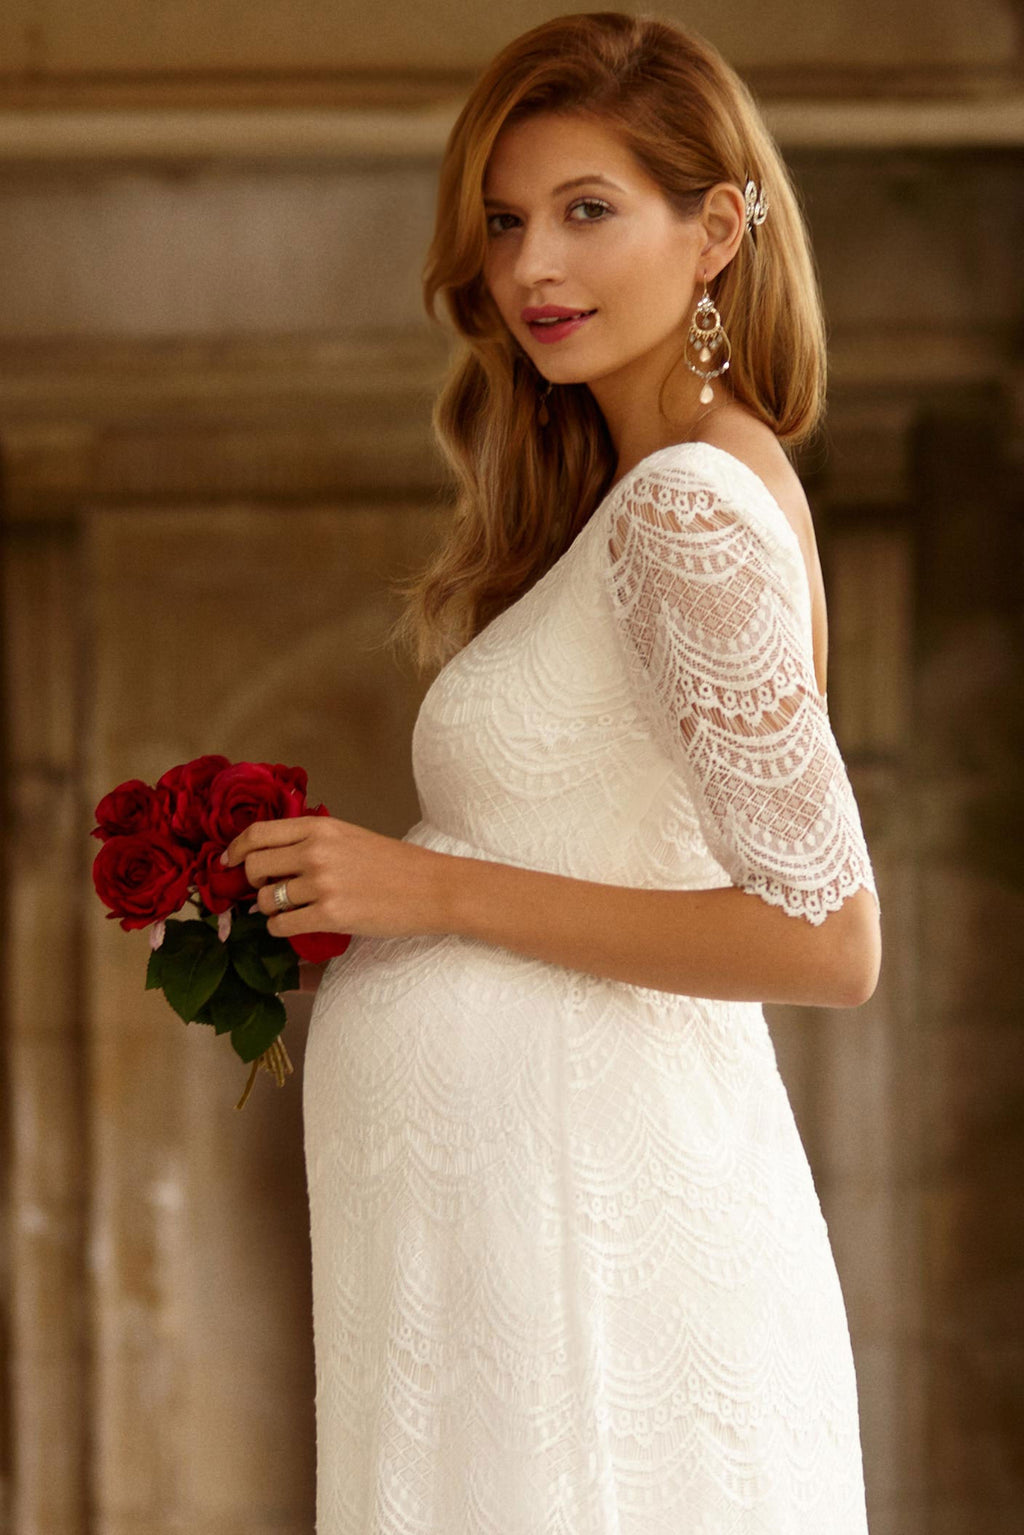 Tiffany Rose VERONA Maternity Gown